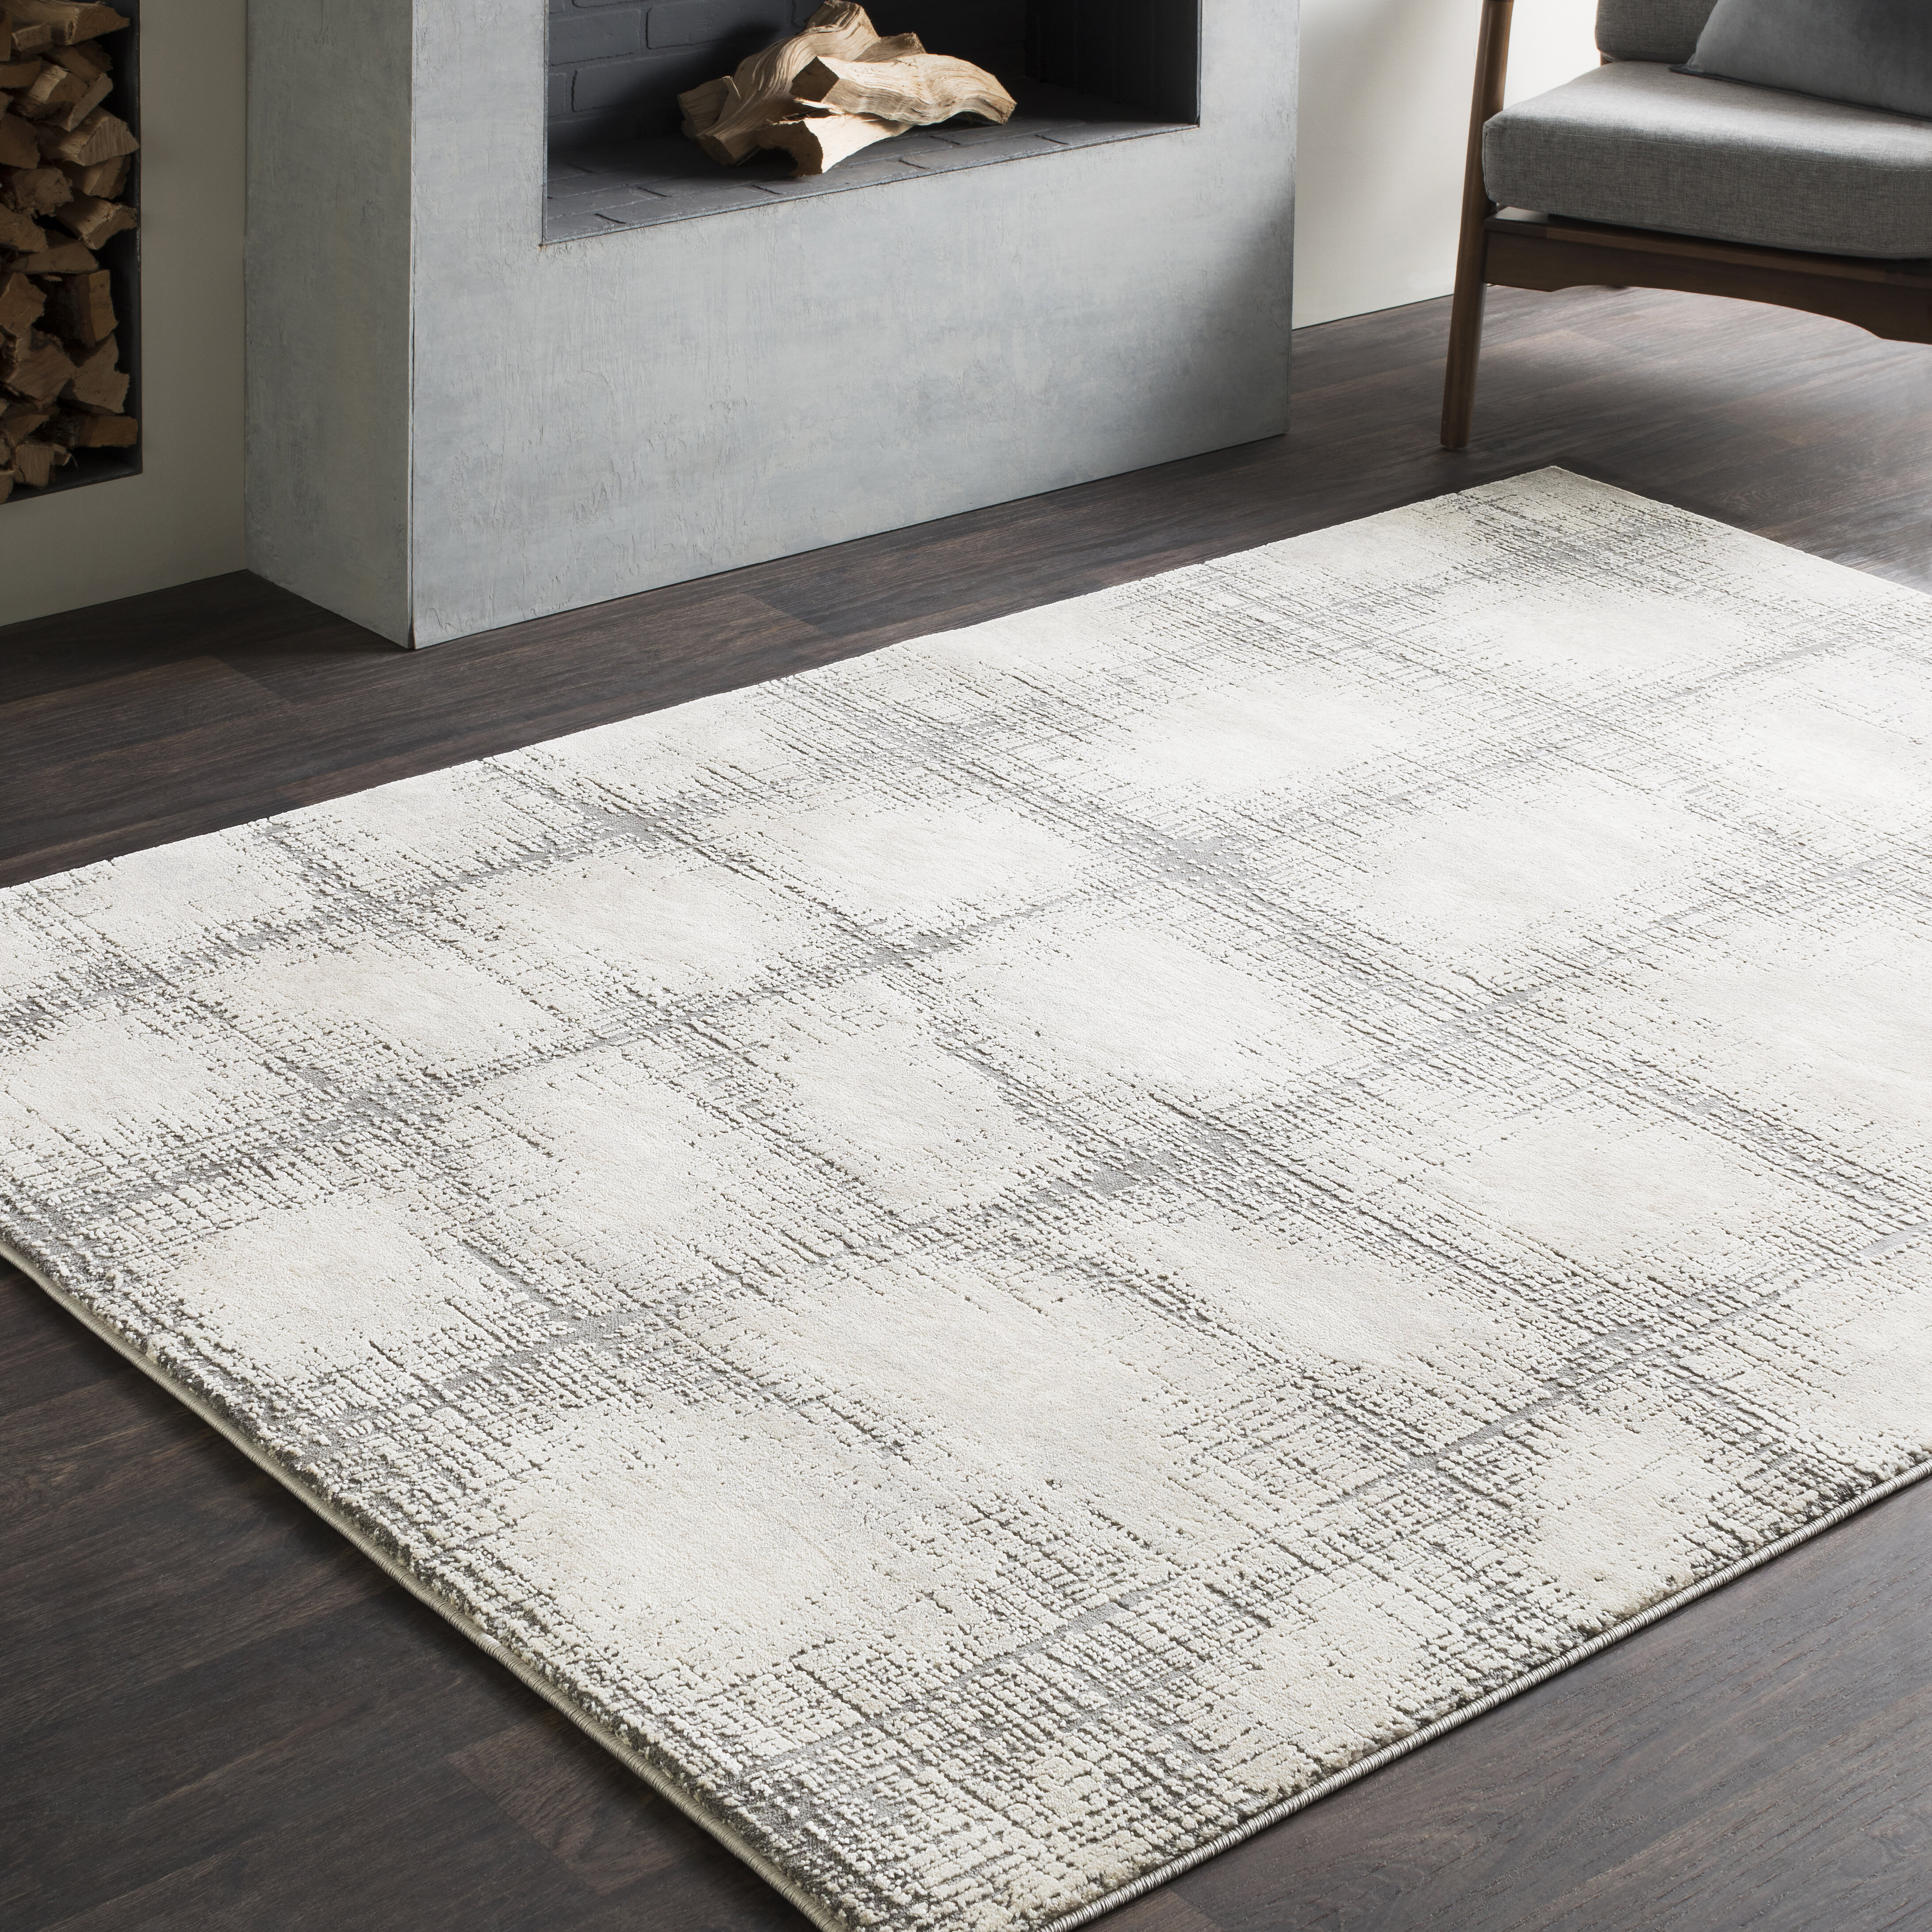 area grey decor contemporary modern rug rugs products and runner yellow trellis cream gray